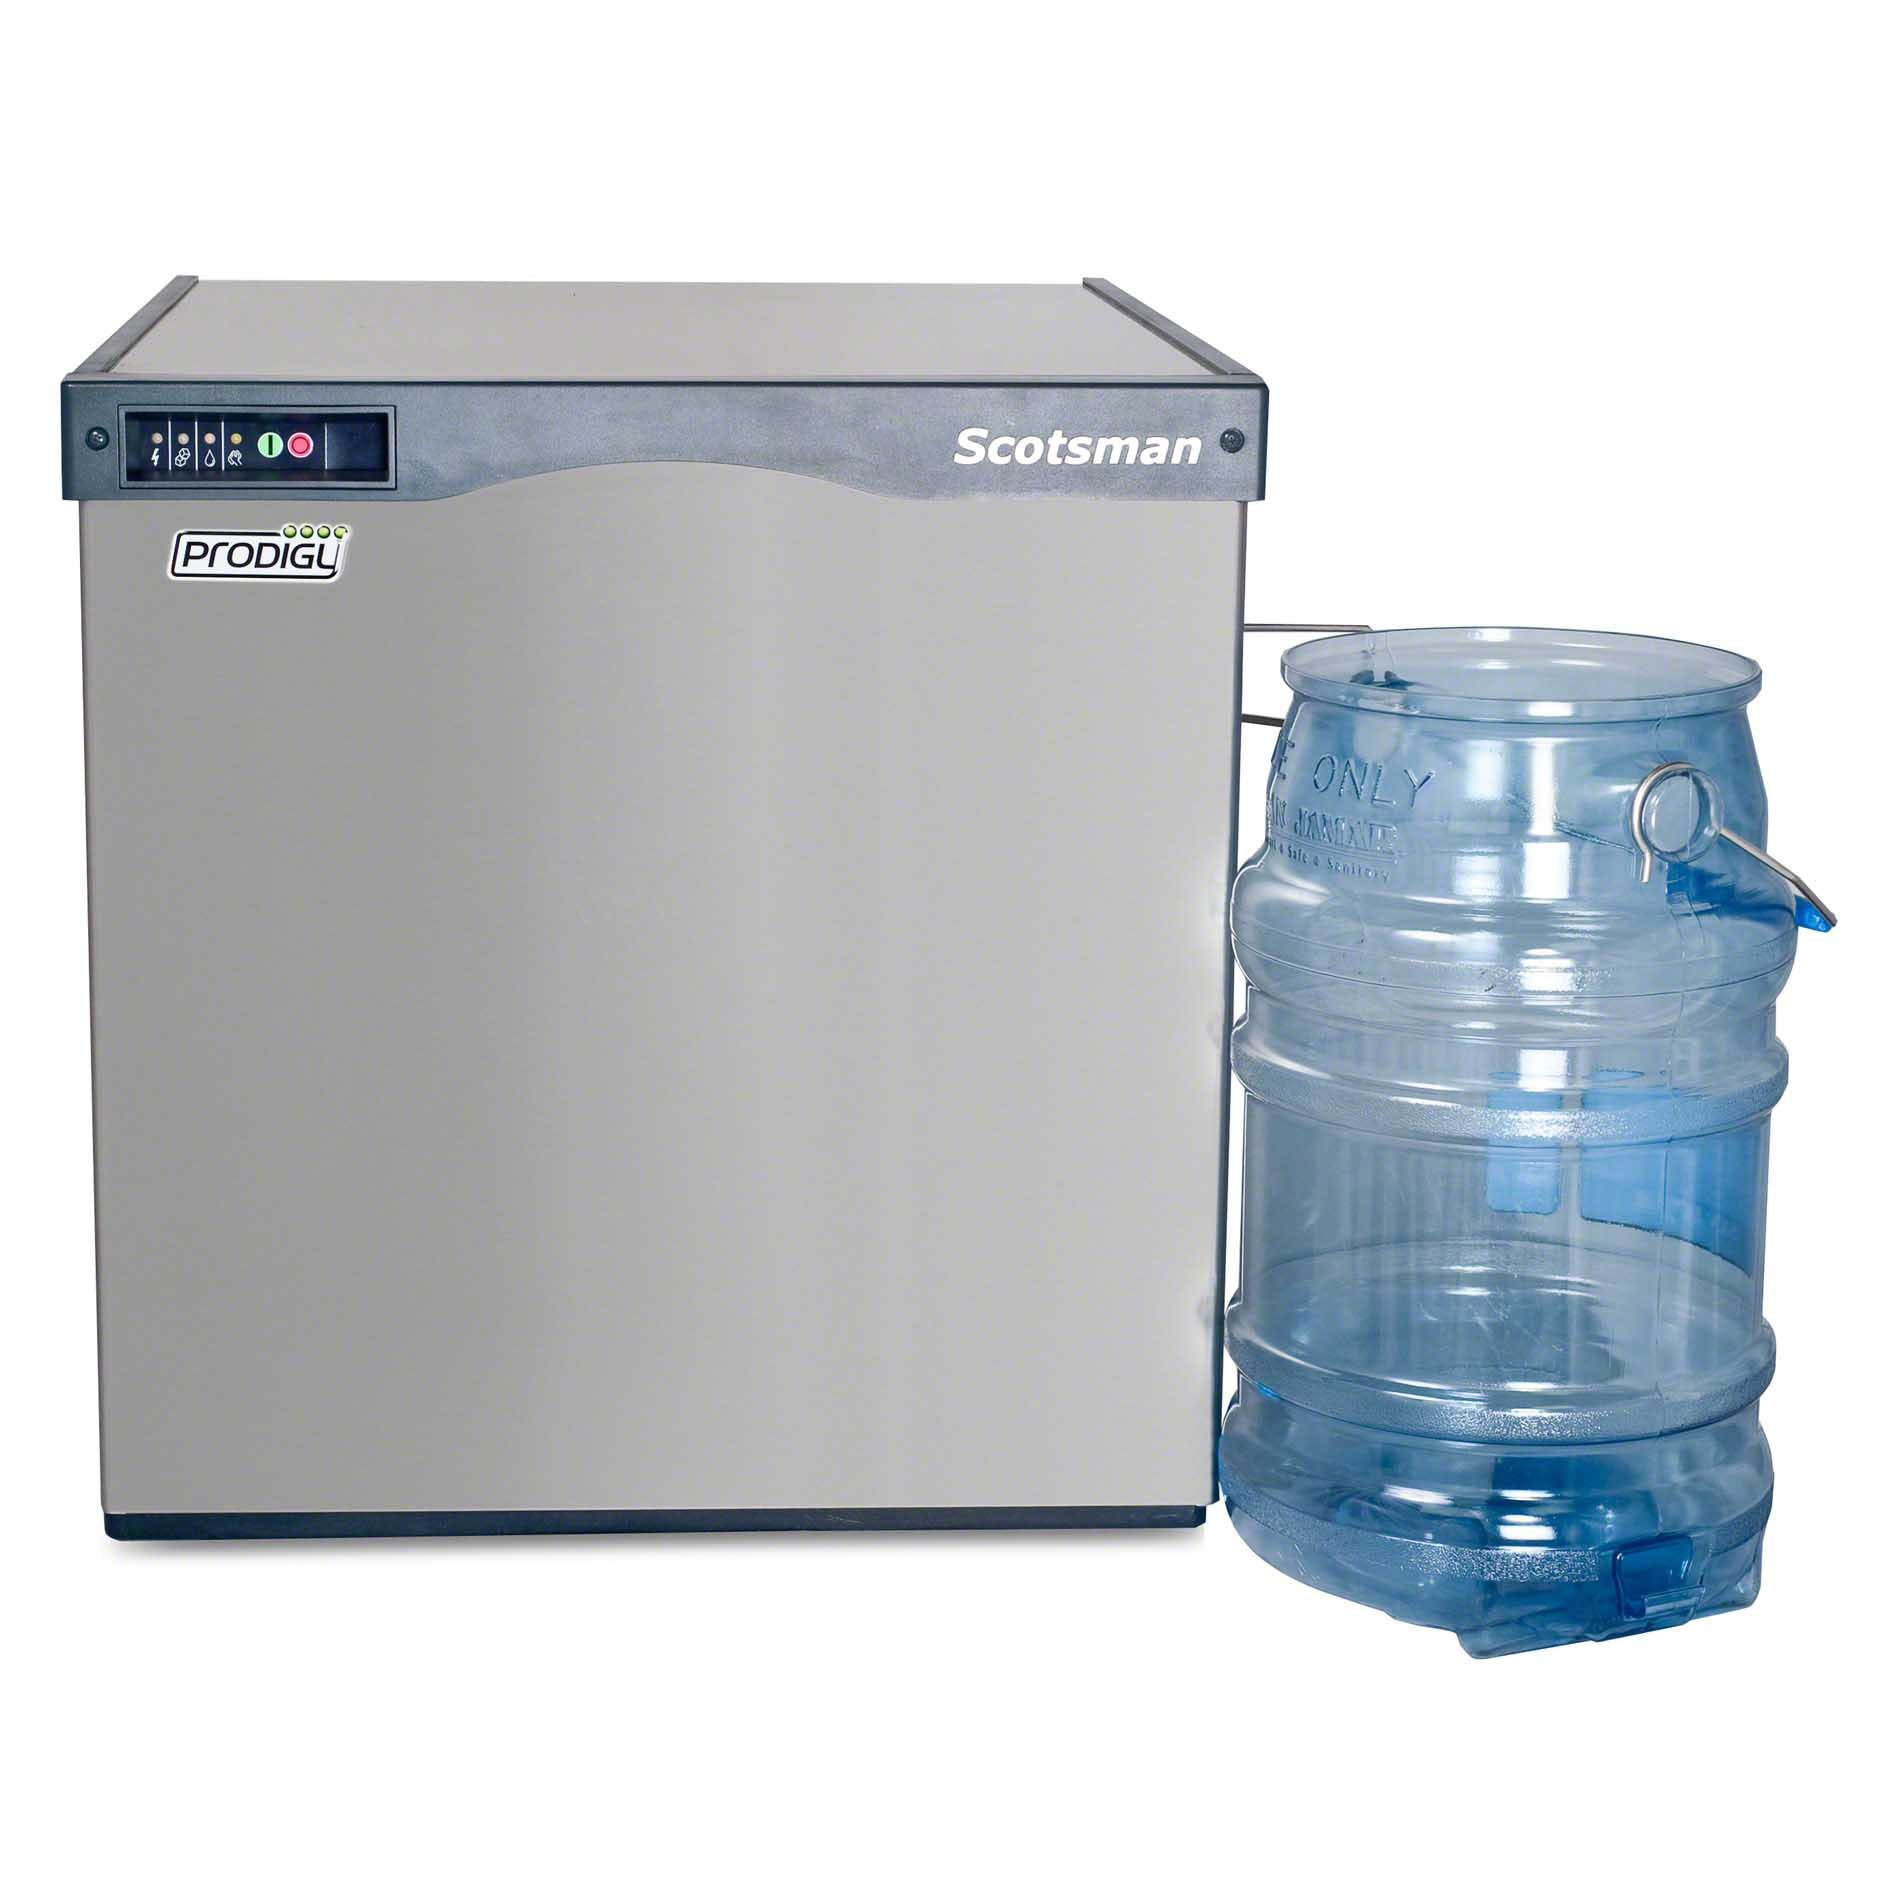 Scotsman - C0522SR-1A 517 lb Half Size Cube Ice Machine - Prodigy Series Ice machine sold by Food Service Warehouse